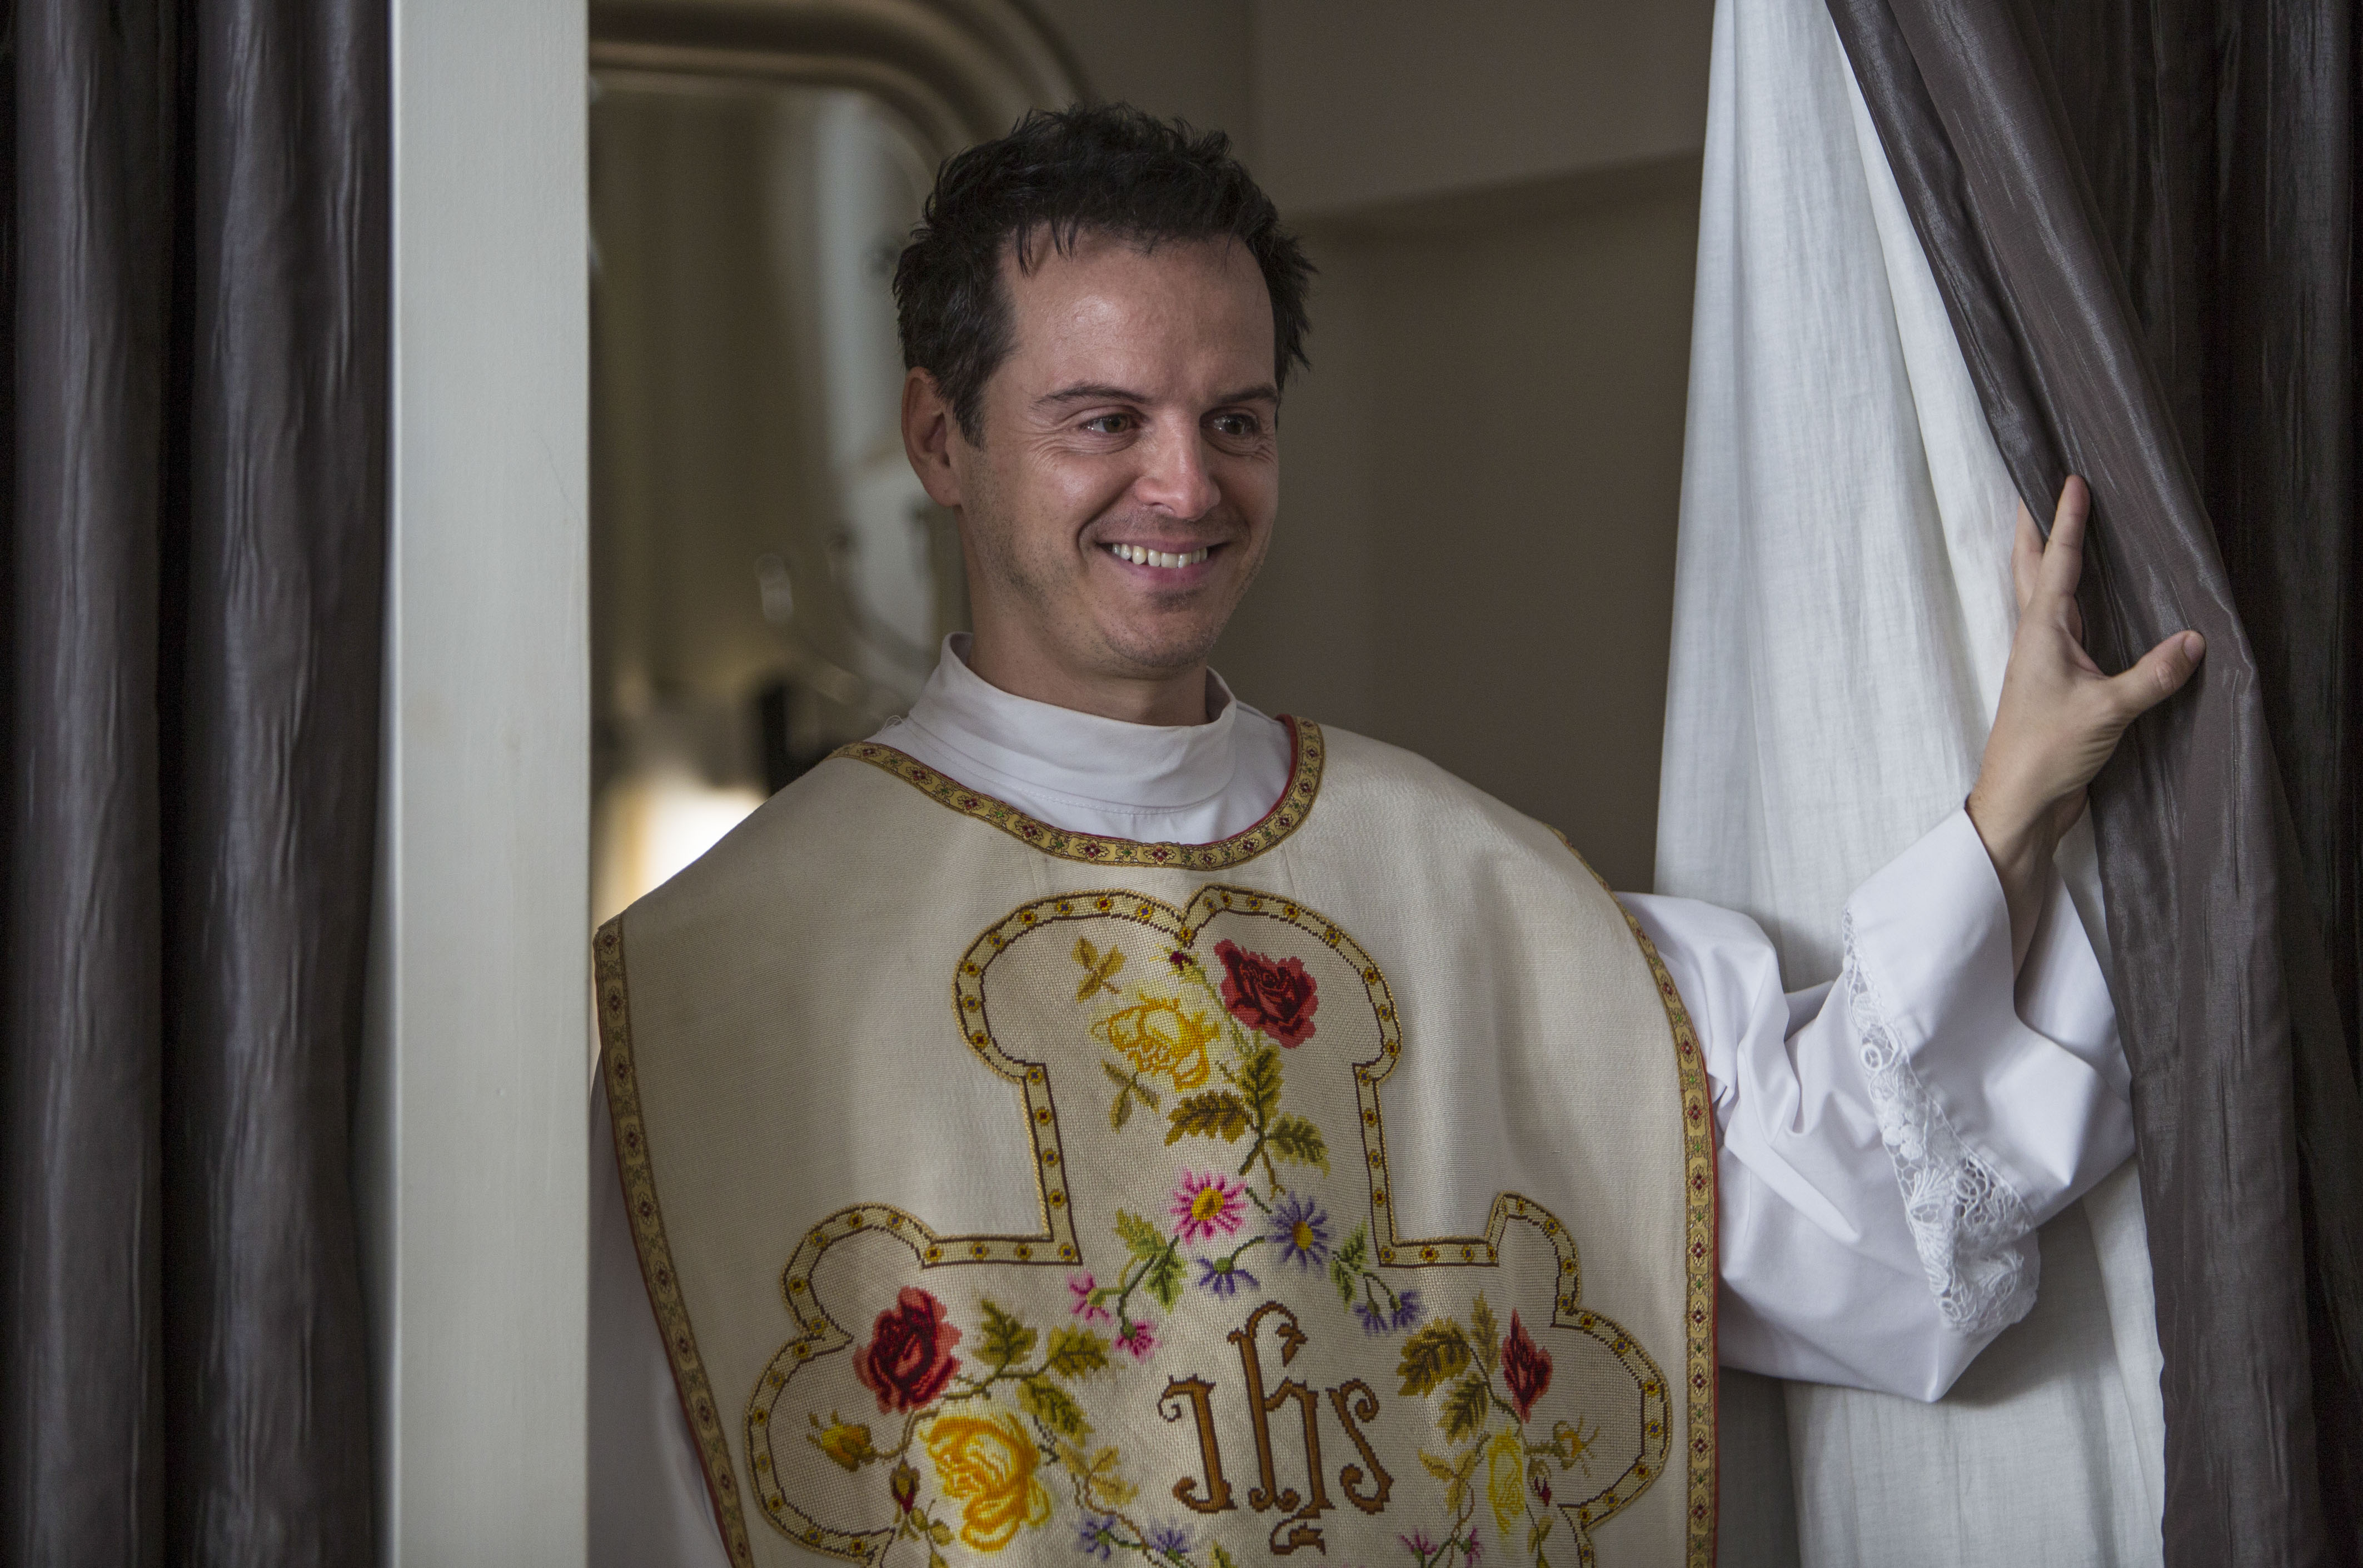 Fleabag's Andrew Scott reveals he's caused Google surge in people looking to have sex with priests